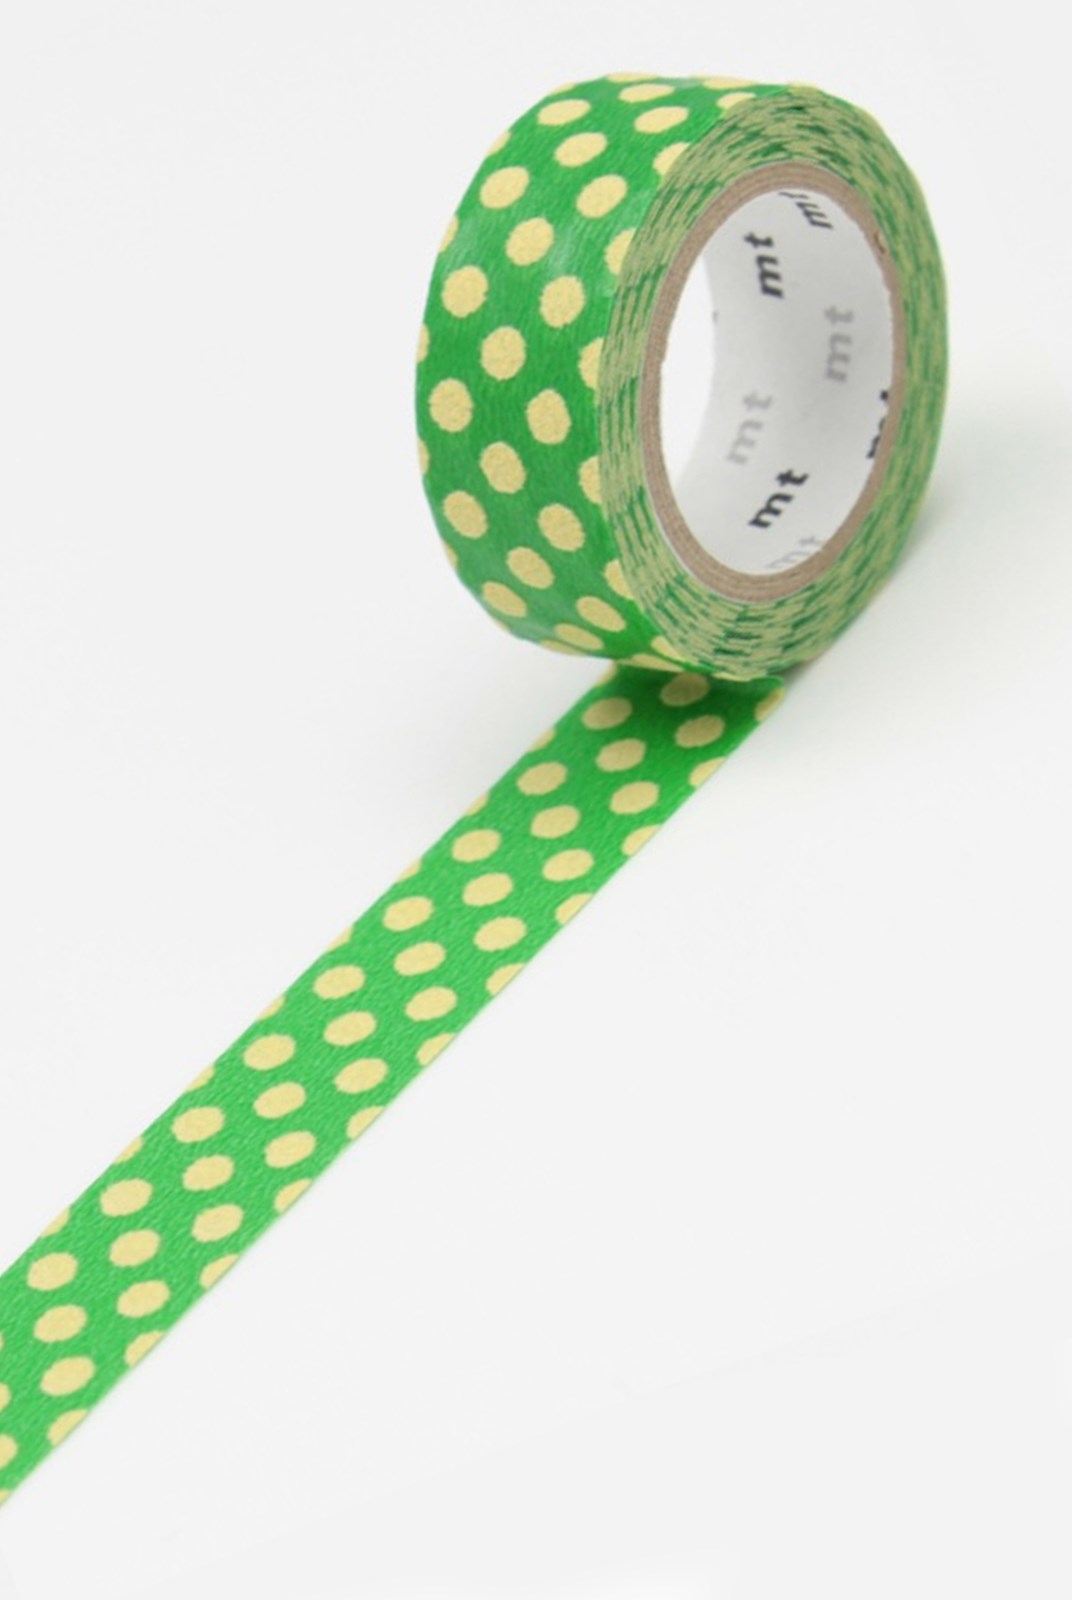 Masking Tape MT - Single Roll - Fabric - Dot Green & Cream